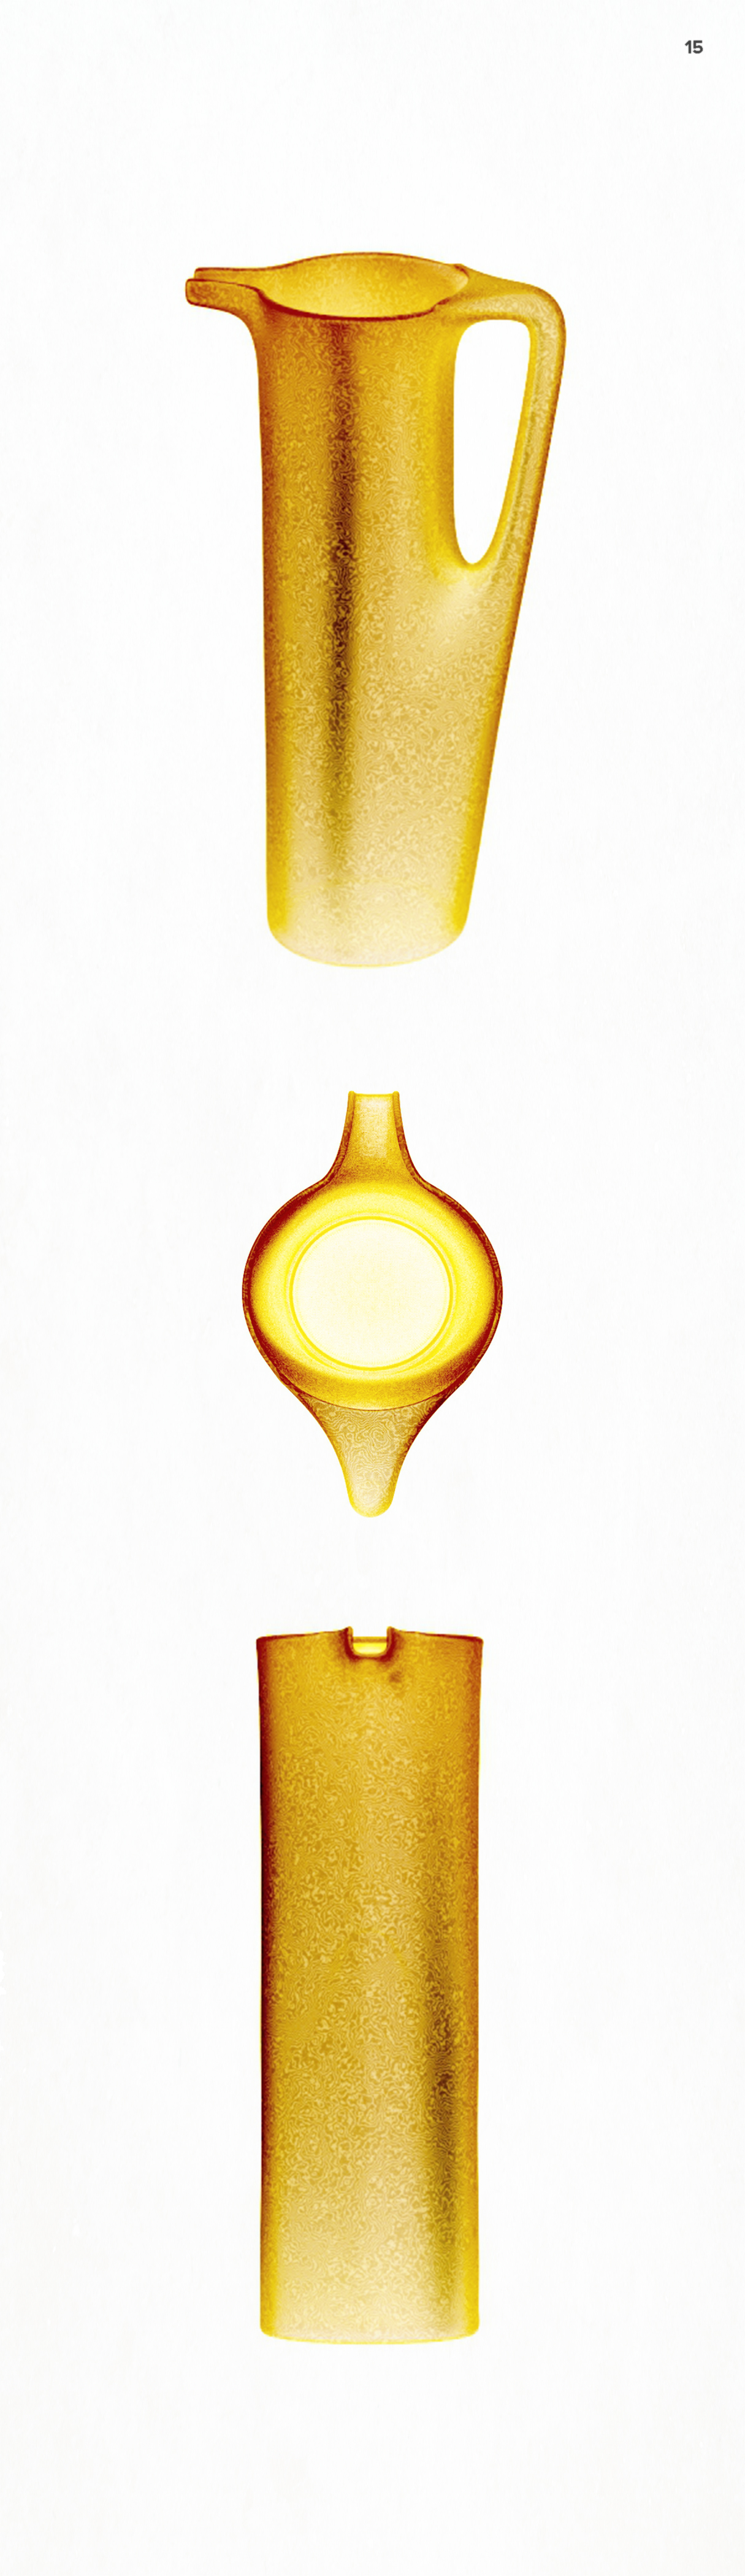 citrine glass pitcher product design